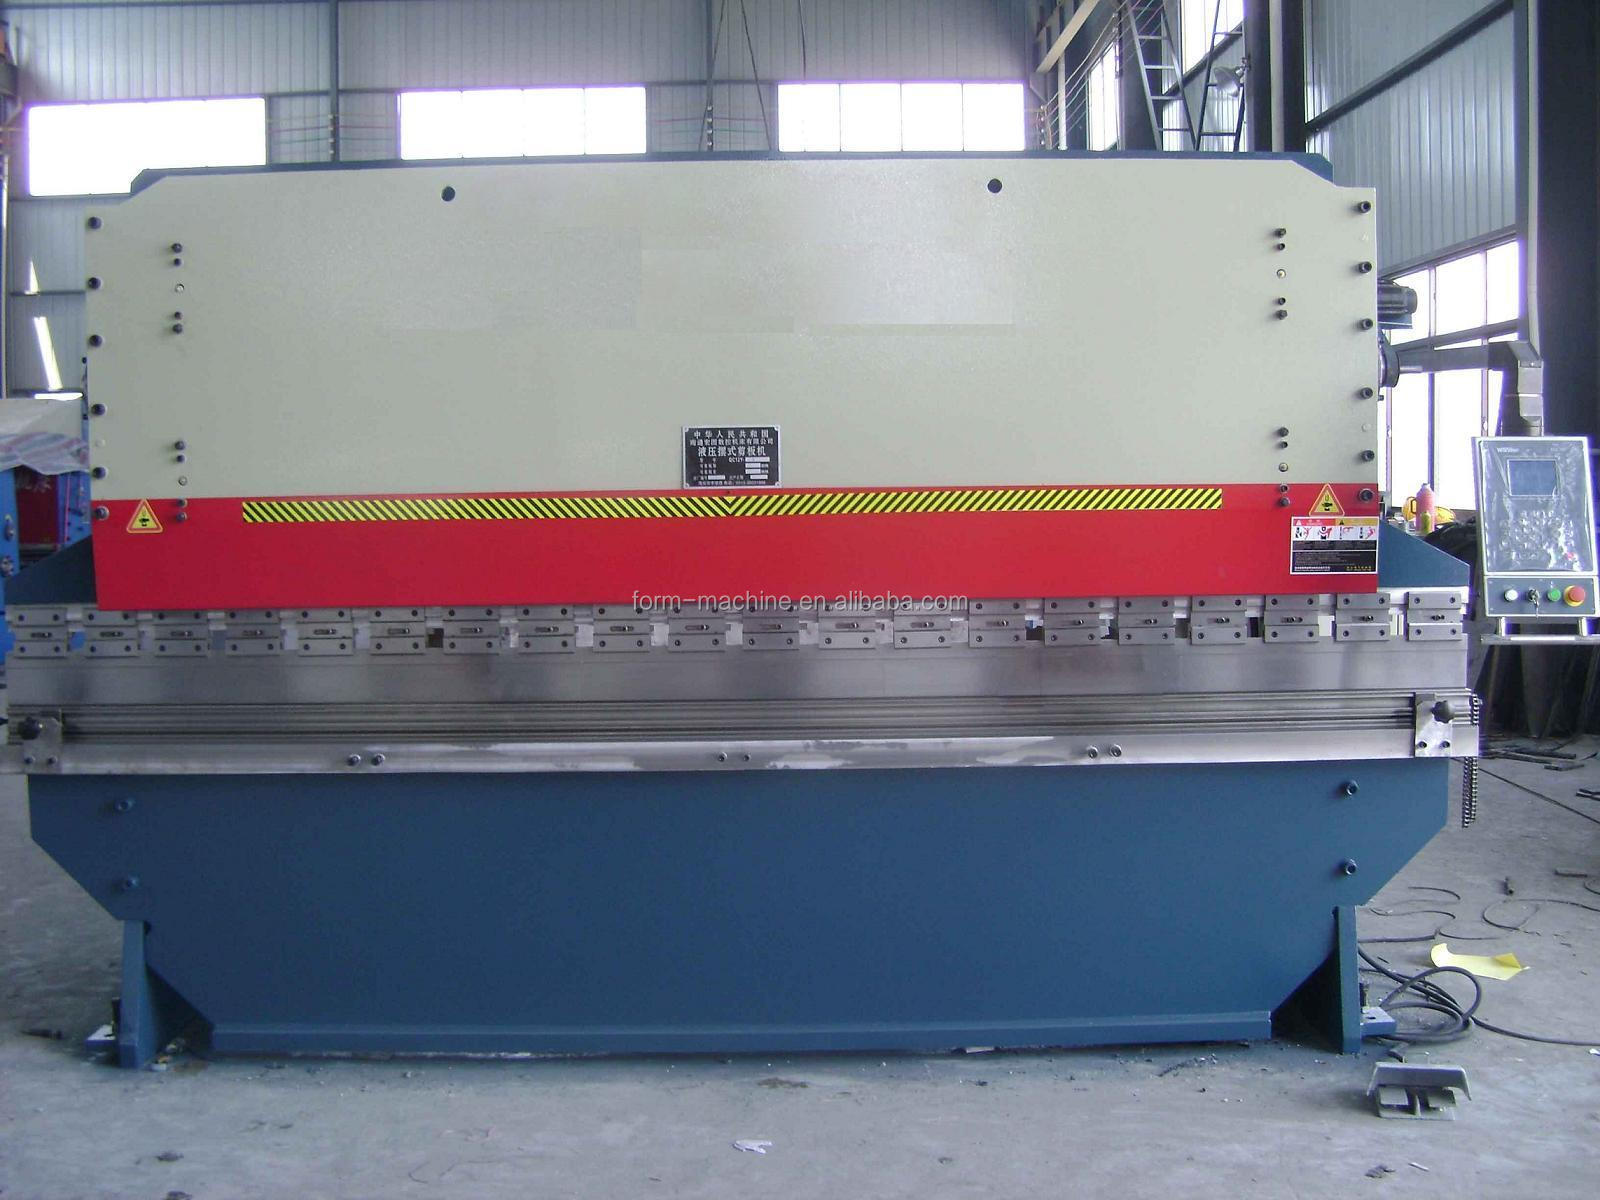 Delem Angle Programming Control hydraulic press brake bending machine